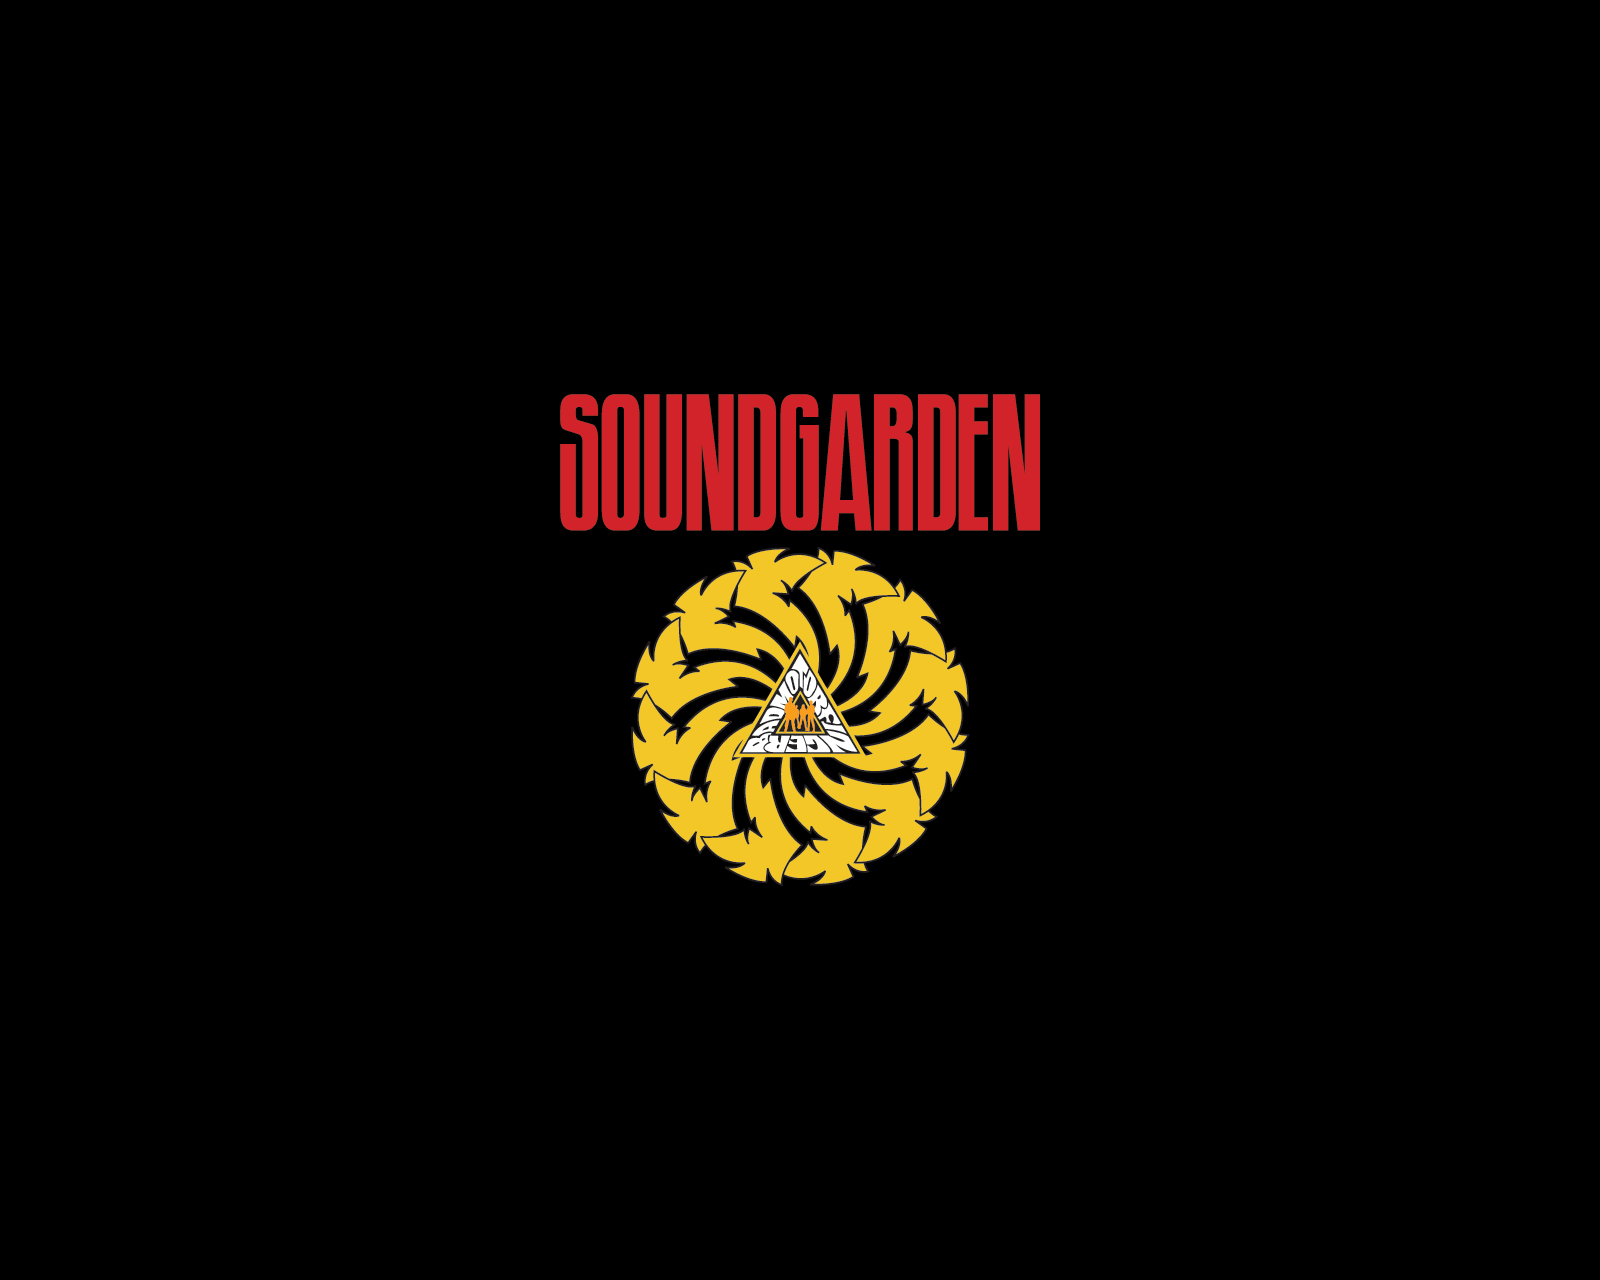 4 soundgarden hd wallpapers | background images - wallpaper abyss